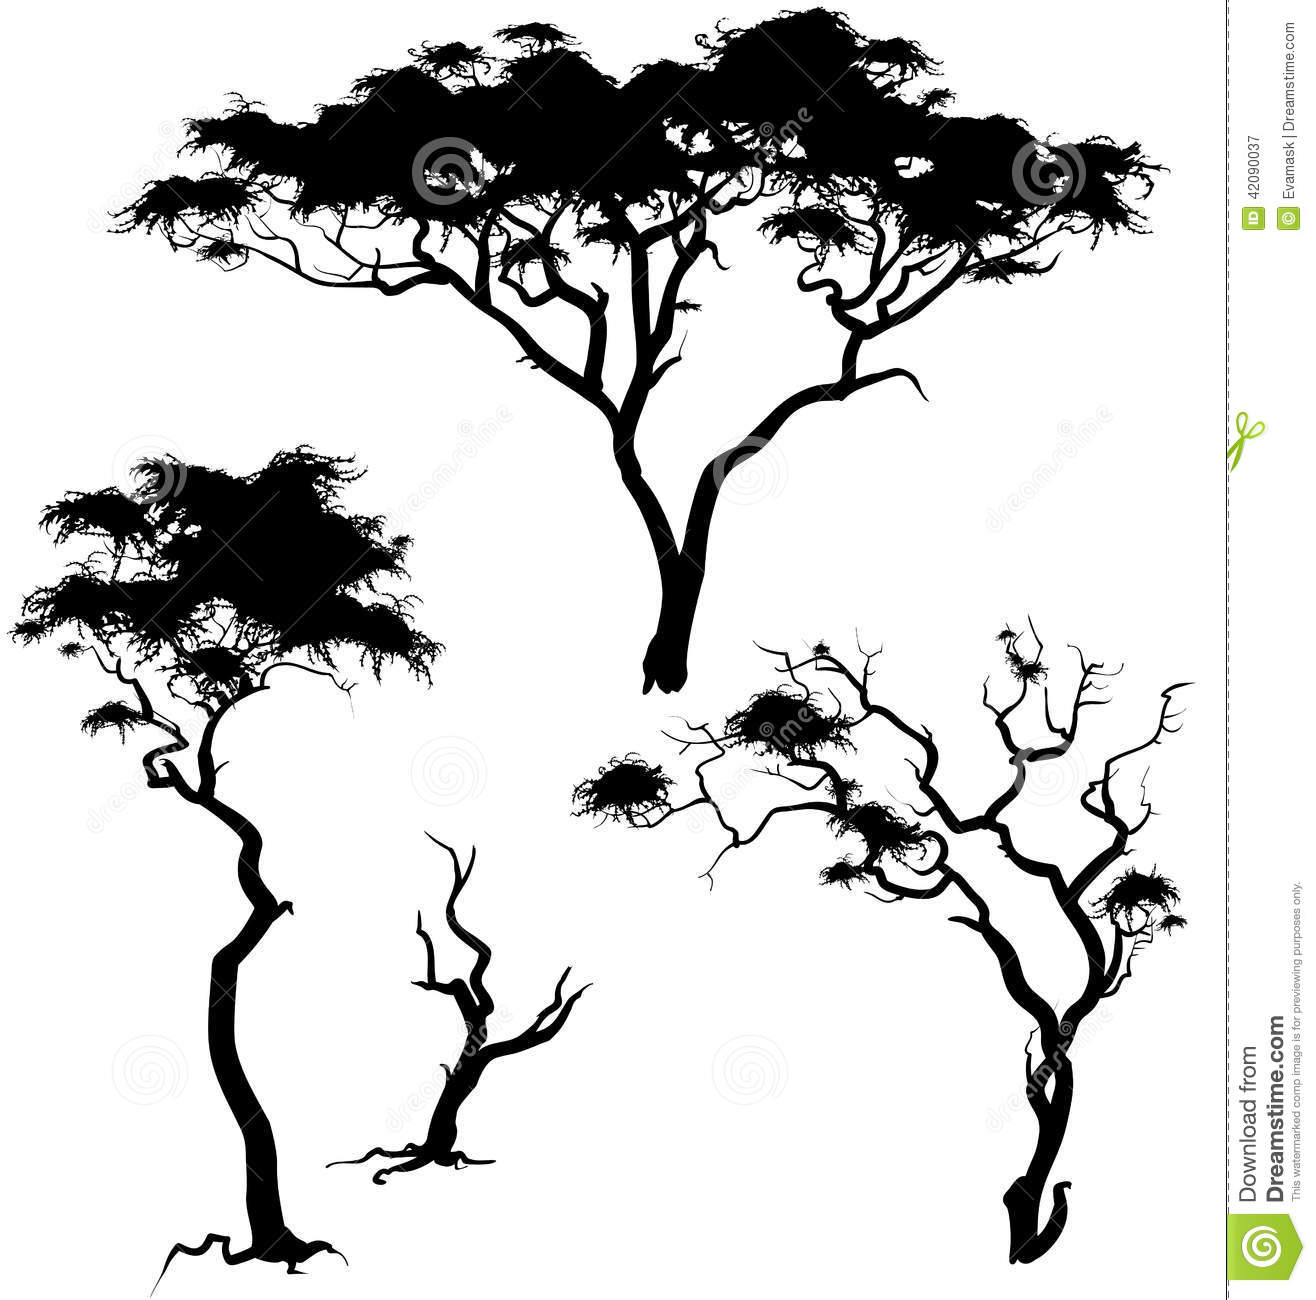 african trees coloring pages - photo#28